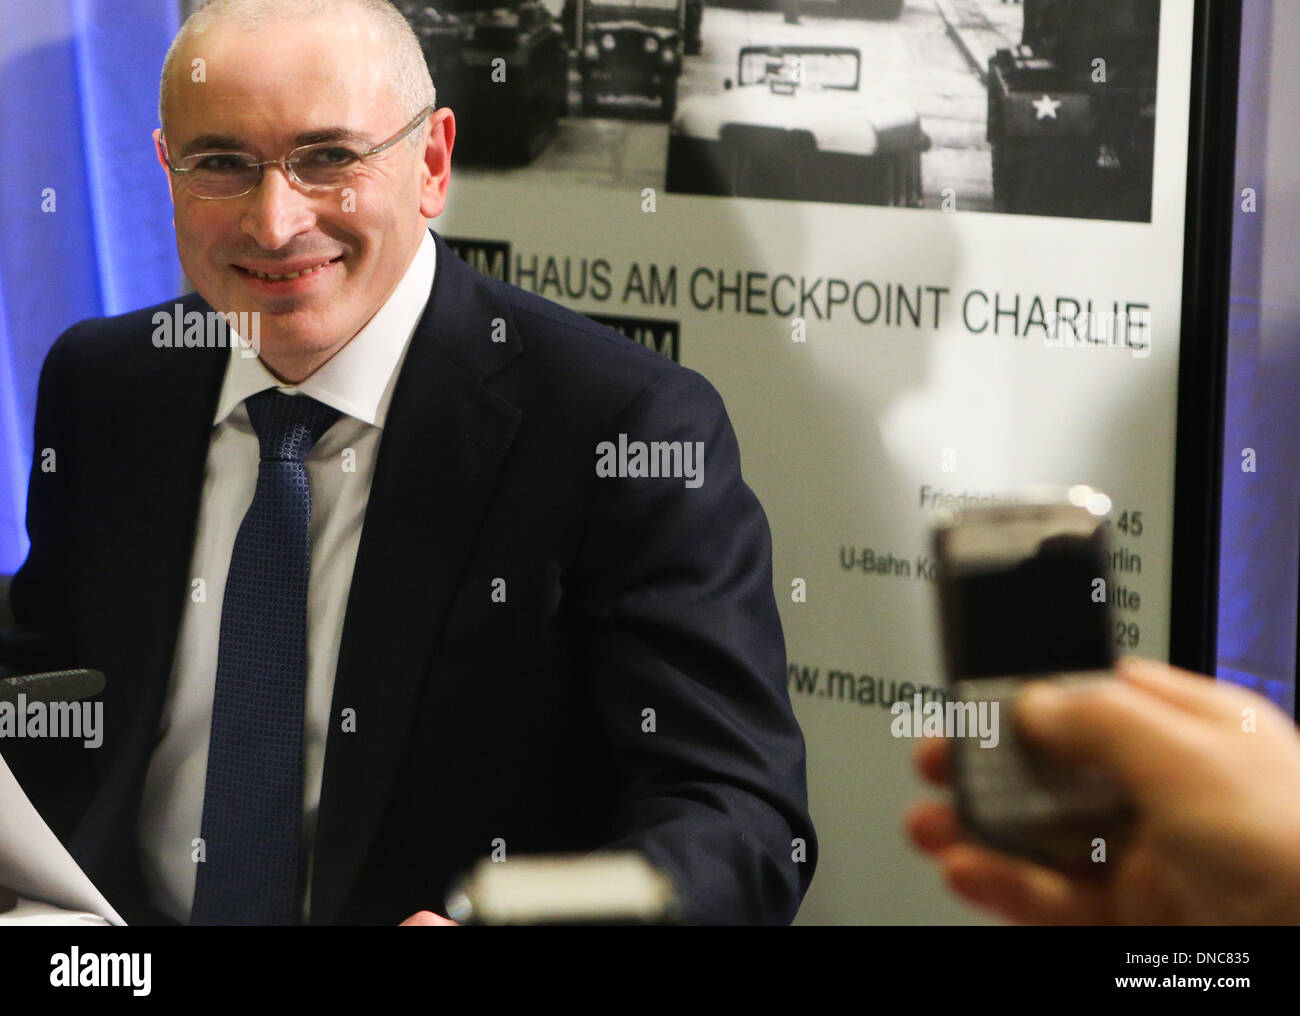 Berlin, Germany. 22nd Dec, 2013. Mikhail Khodorkovsky smiles during a press conference in Berlin, Germany, on Dec. 22, 2013. Mikhail Khodorkovsky, a former oil tycoon and one of Russia's most famous prisoners, said here on Sunday that he will not engage in Russian politics or fund the country's political opposition. Credit:  Zhang Fan/Xinhua/Alamy Live News - Stock Image